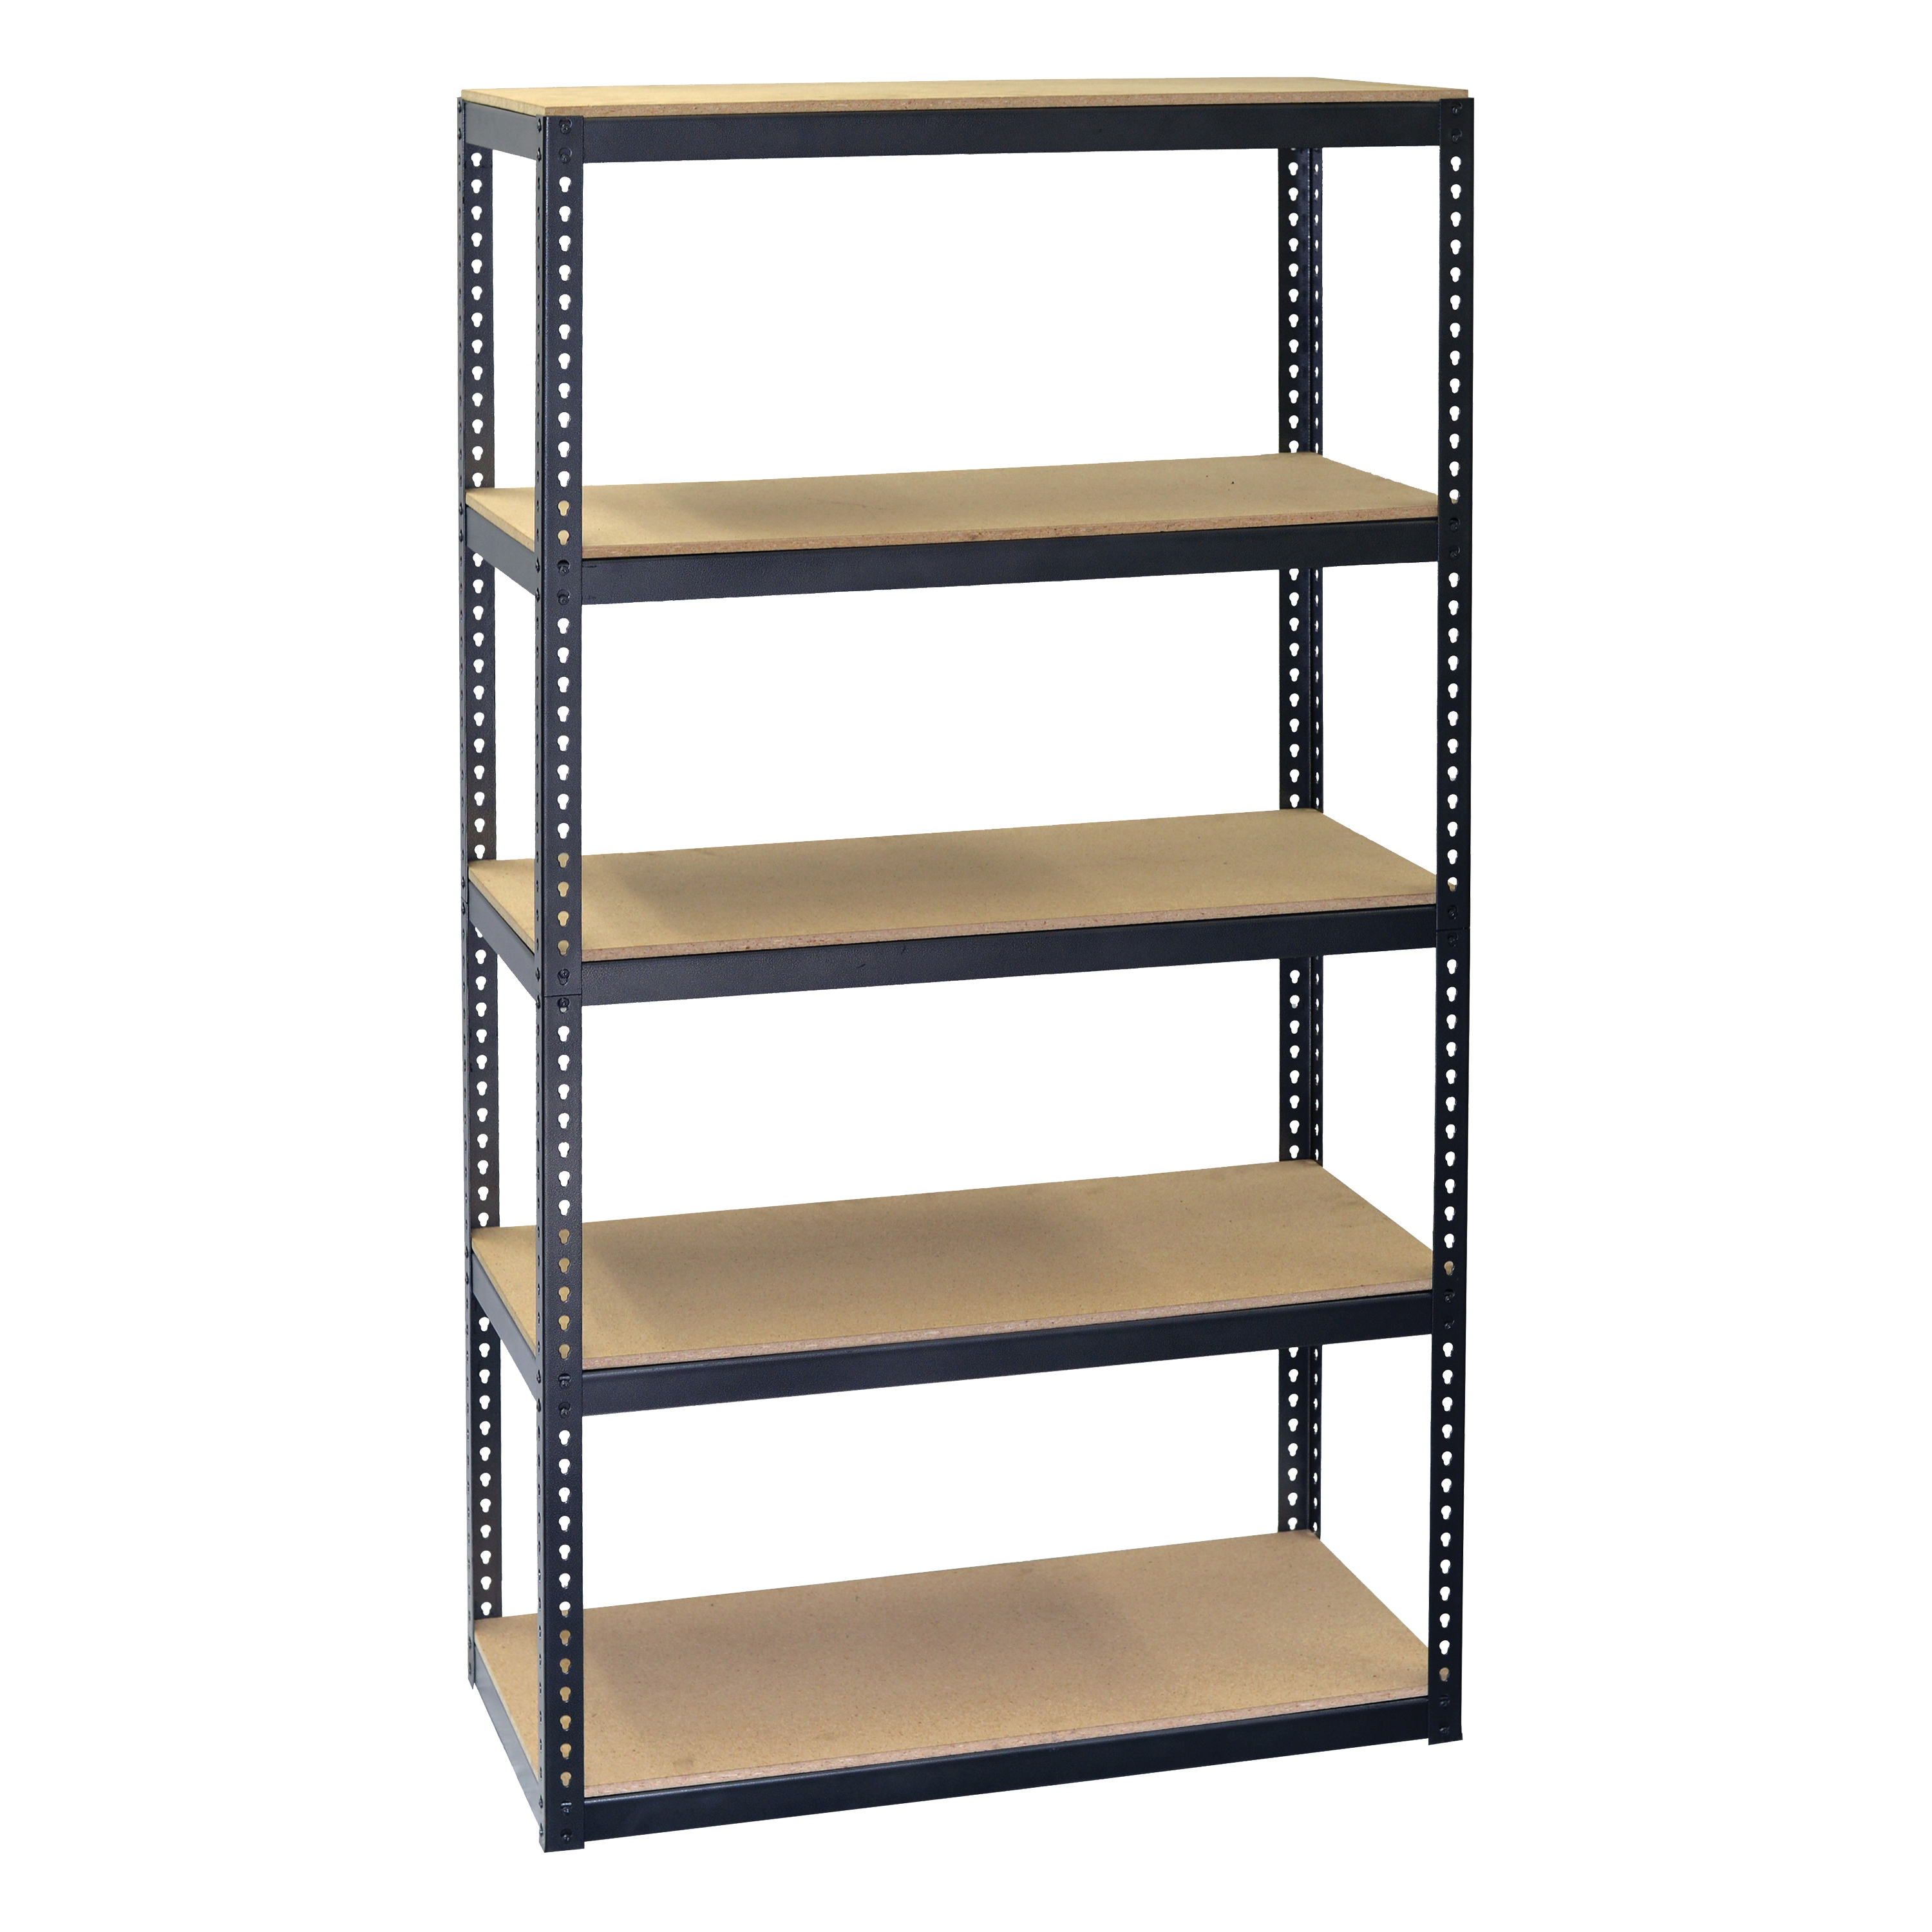 Picture of Storage Concepts SCB0750D Boltless Shelving Unit, 2250 lb Capacity, 5-Shelf, 30 in OAW, 15 in OAD, 60 in OAH